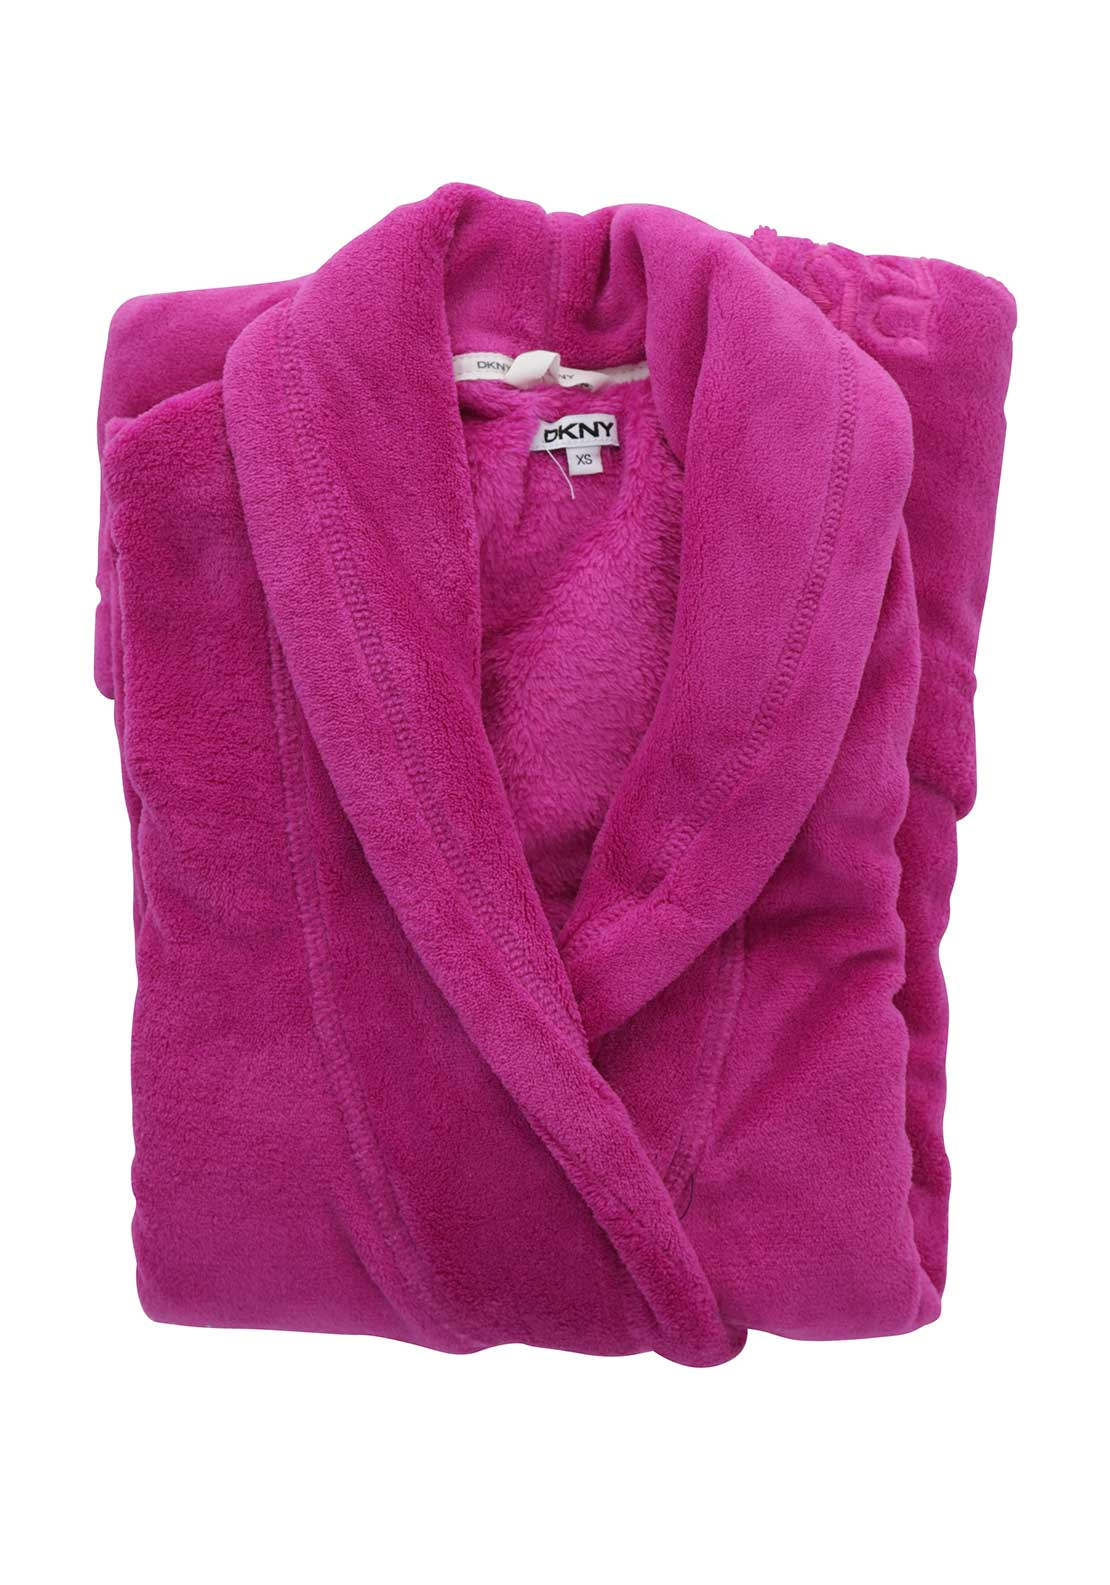 DKNY Womens Fleece Dressing Gown, Fuschia Pink